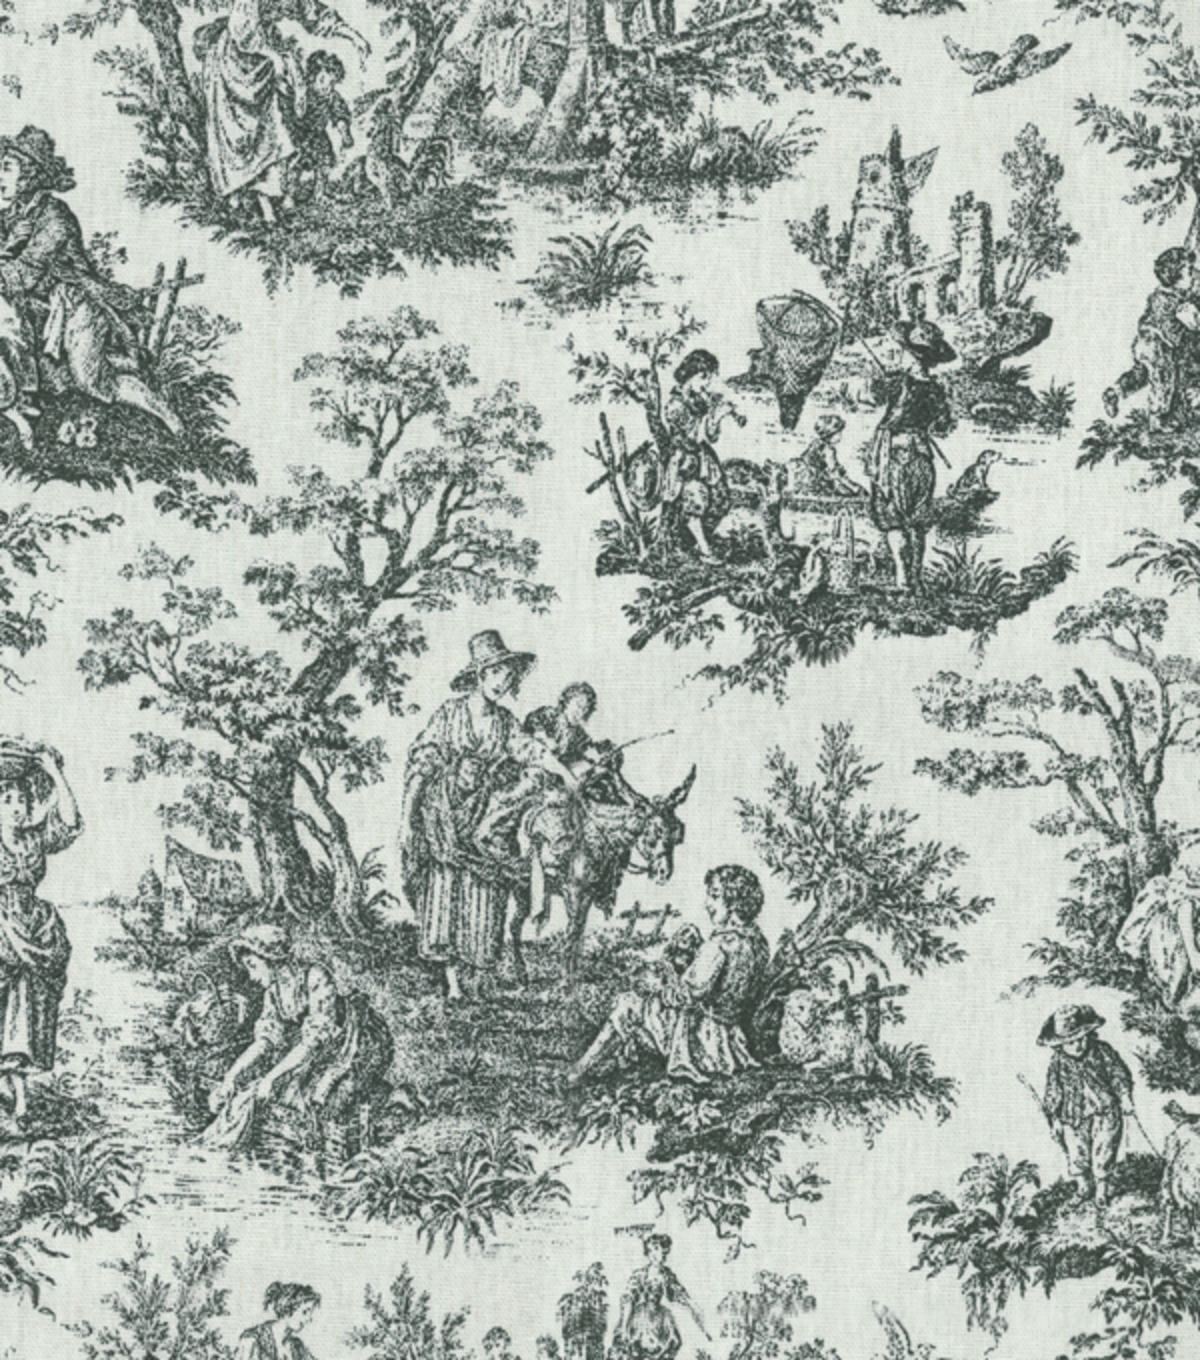 waverly home decor print fabric rustic toile black. Black Bedroom Furniture Sets. Home Design Ideas